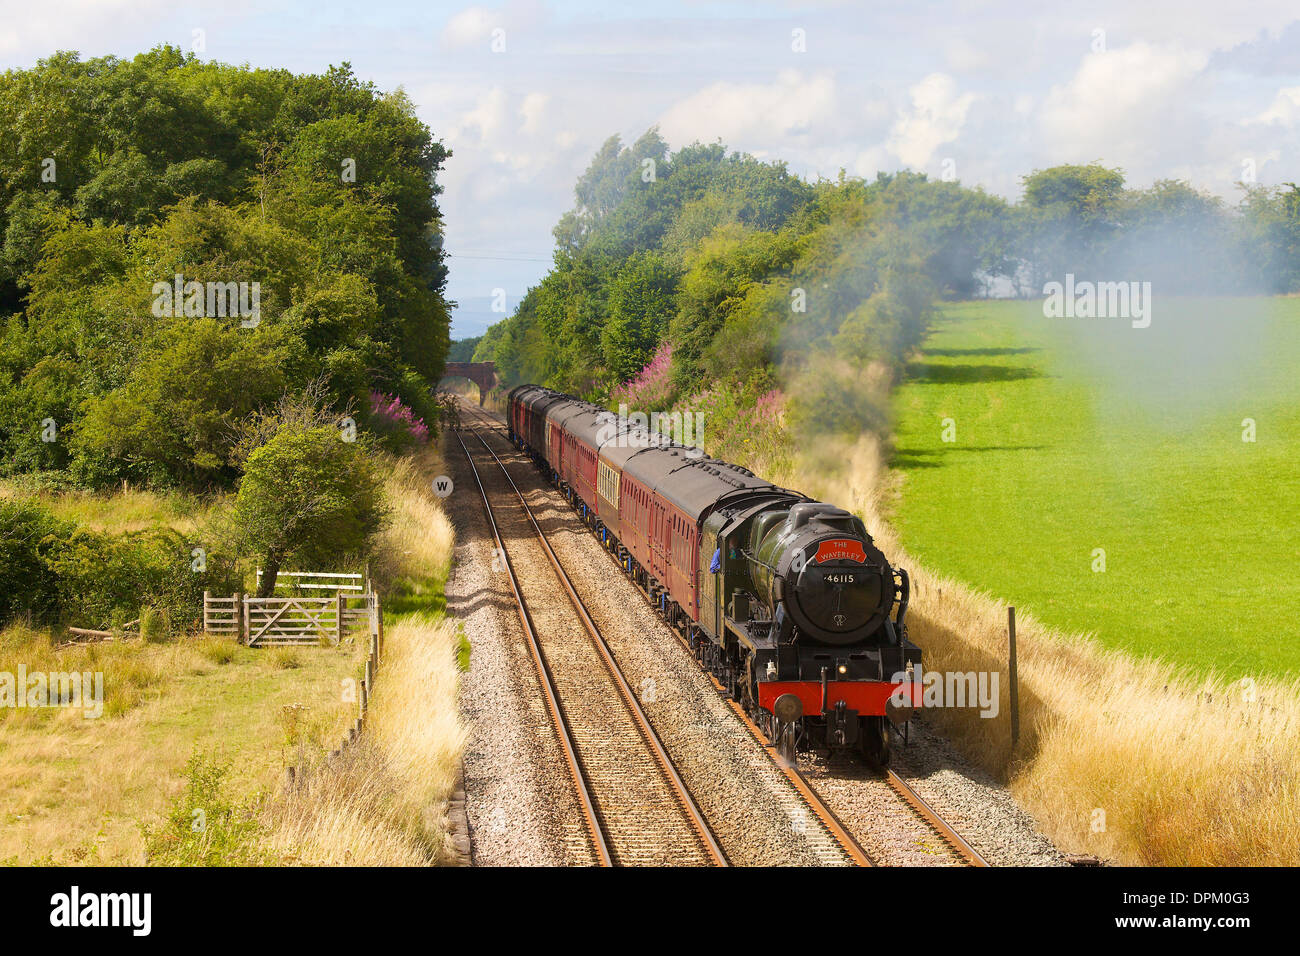 Steam train 46115 Scots Guardsman at Wetheral Sheild on the Settle to Carlisle Railway Line in Cumbria England United Kingdom - Stock Image